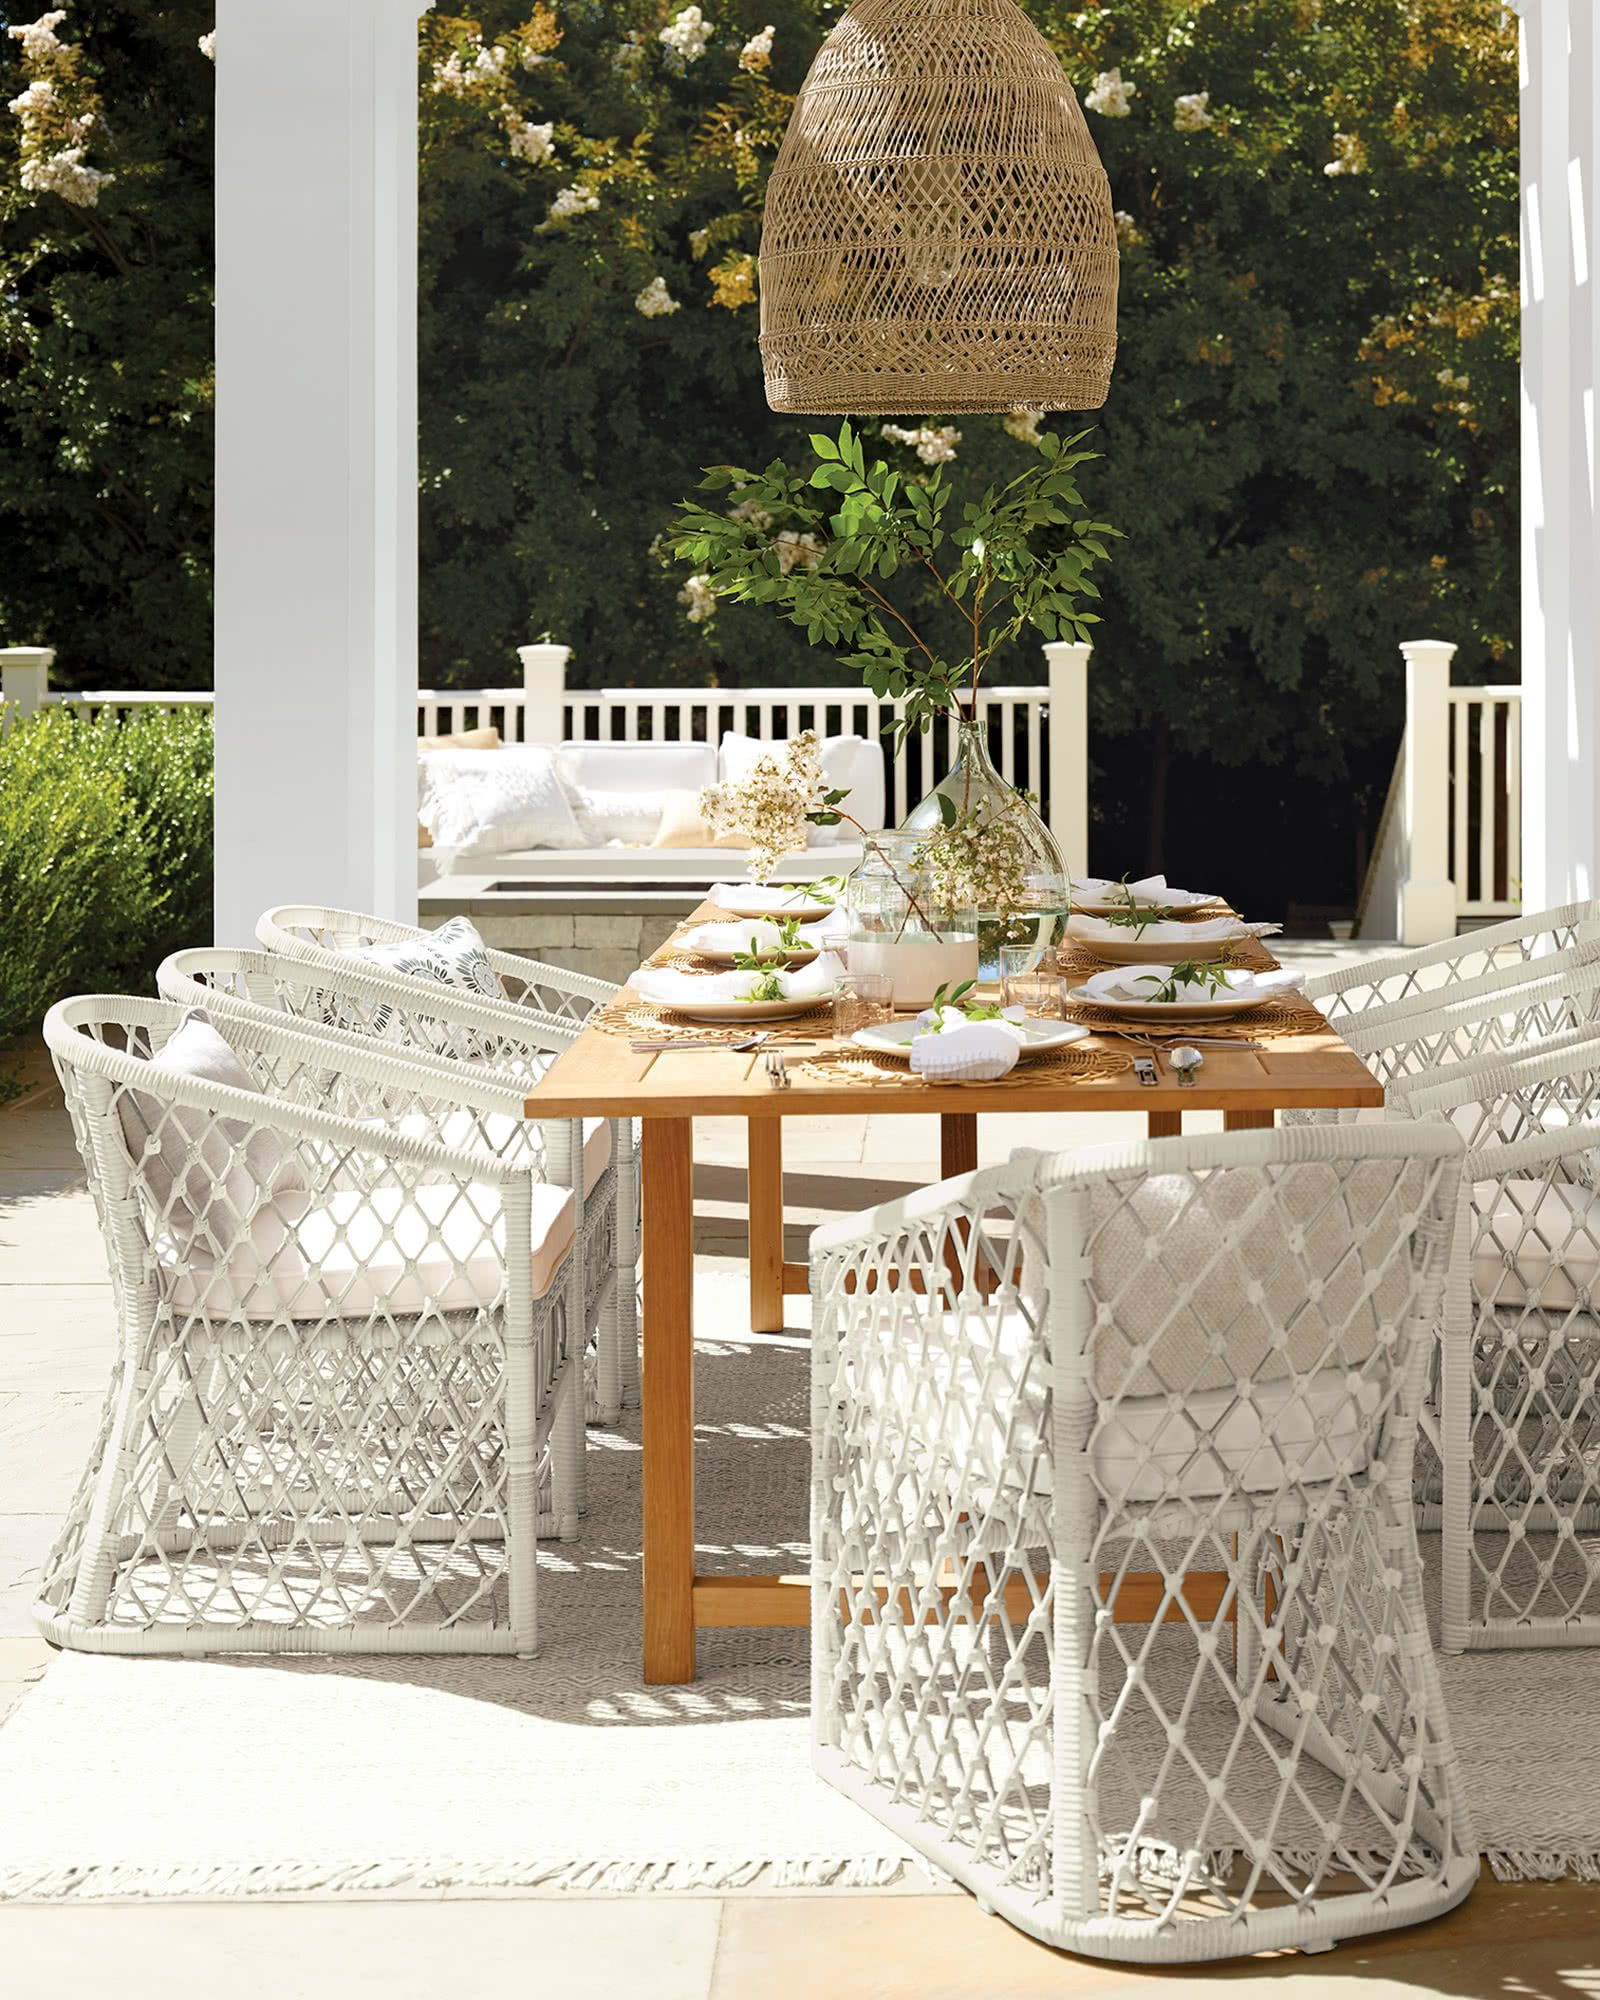 Love The Chairs Outdoor Dining Chairs Outdoor Dining Teak Patio Furniture